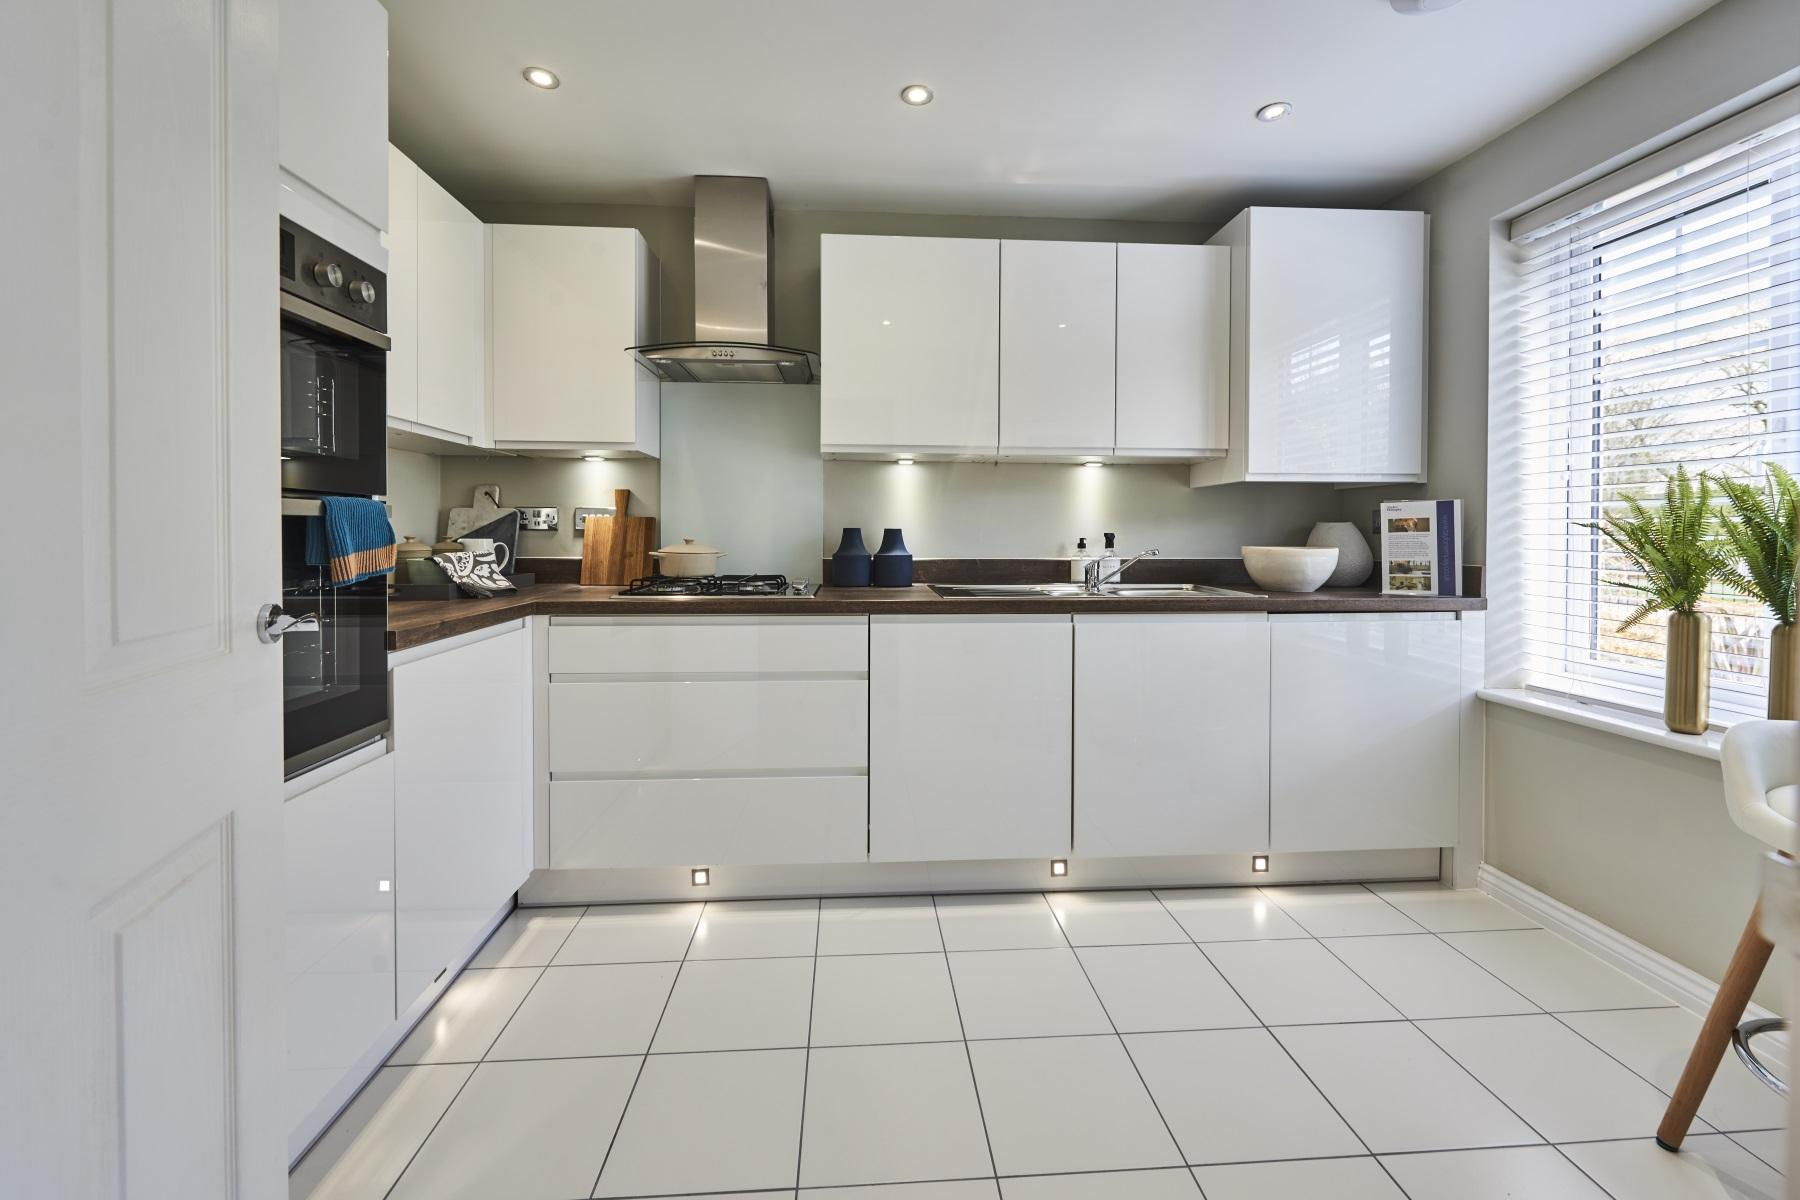 TW Exeter - Mayfield Gardens - Benford example kitchen